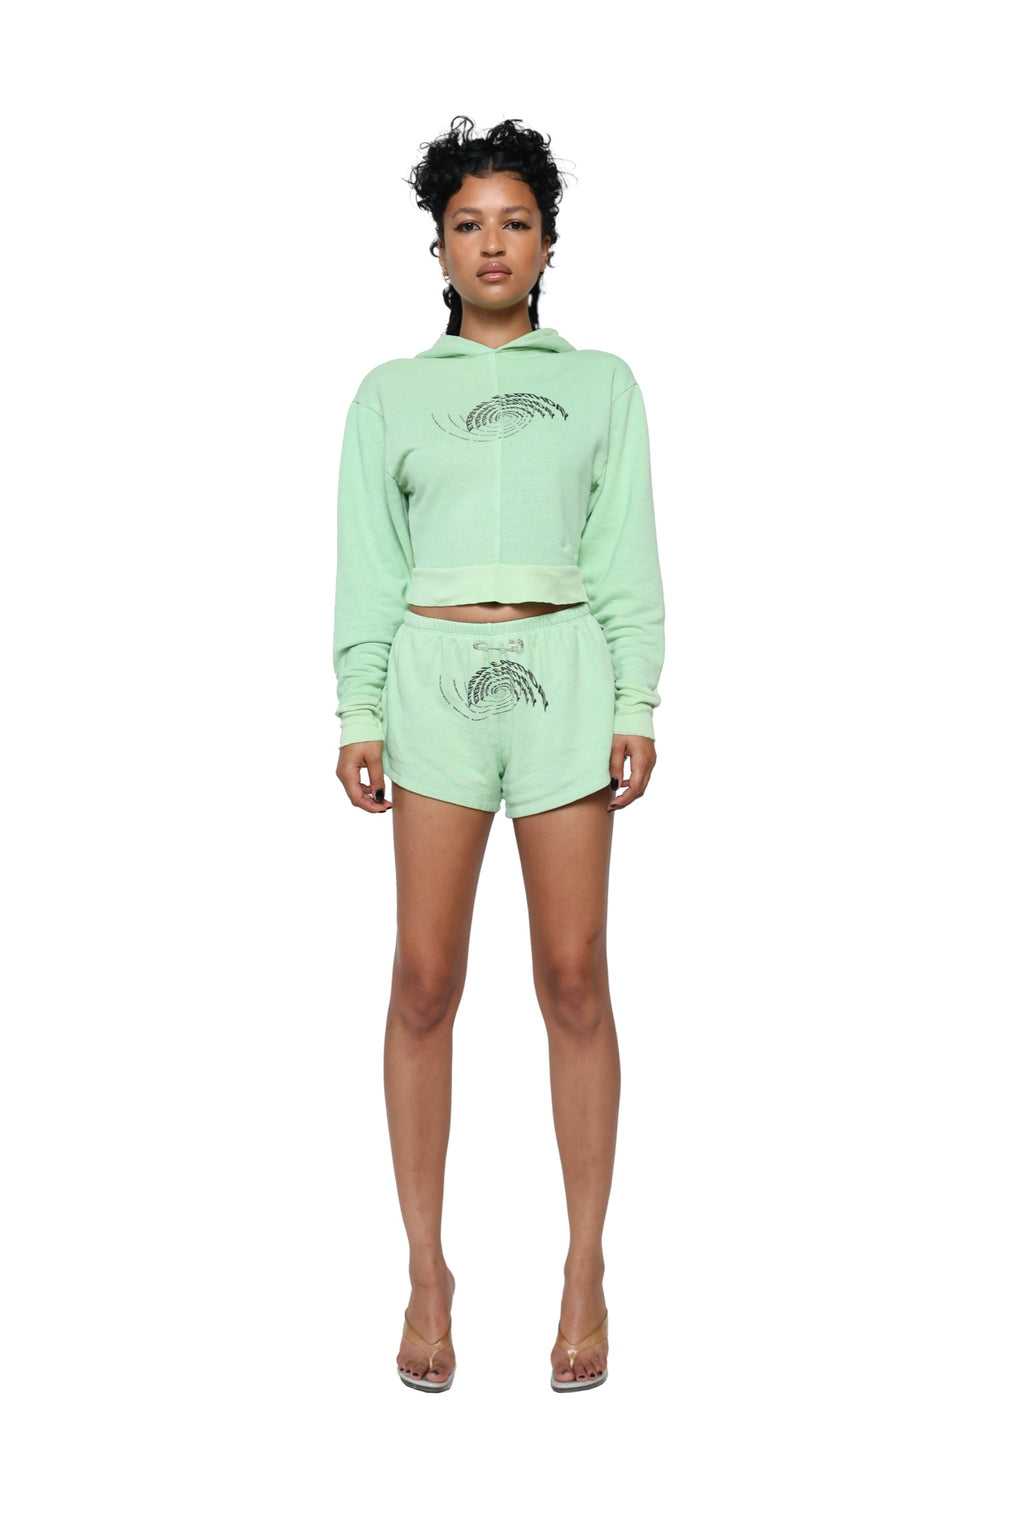 SAFETY PIN MINI SWEATSHORTS IN SEAFOAM